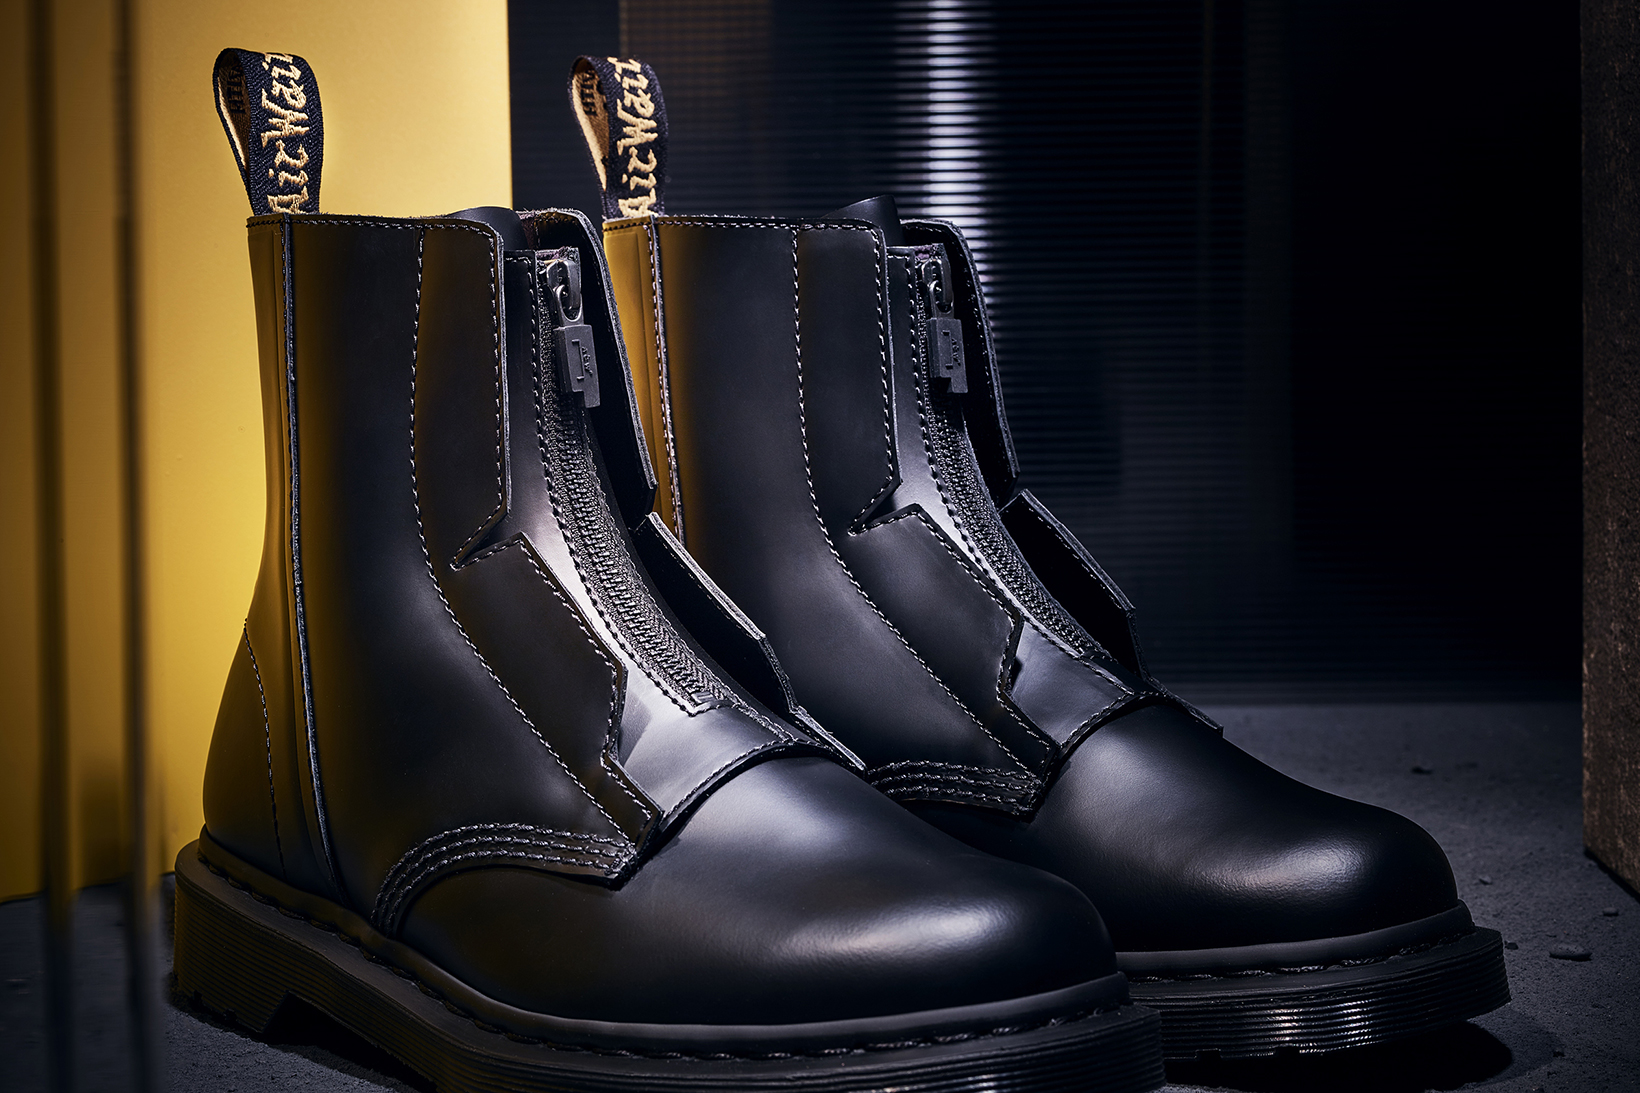 Dr Martens x A-COLD-WALL 1460 Collaboration Release Date